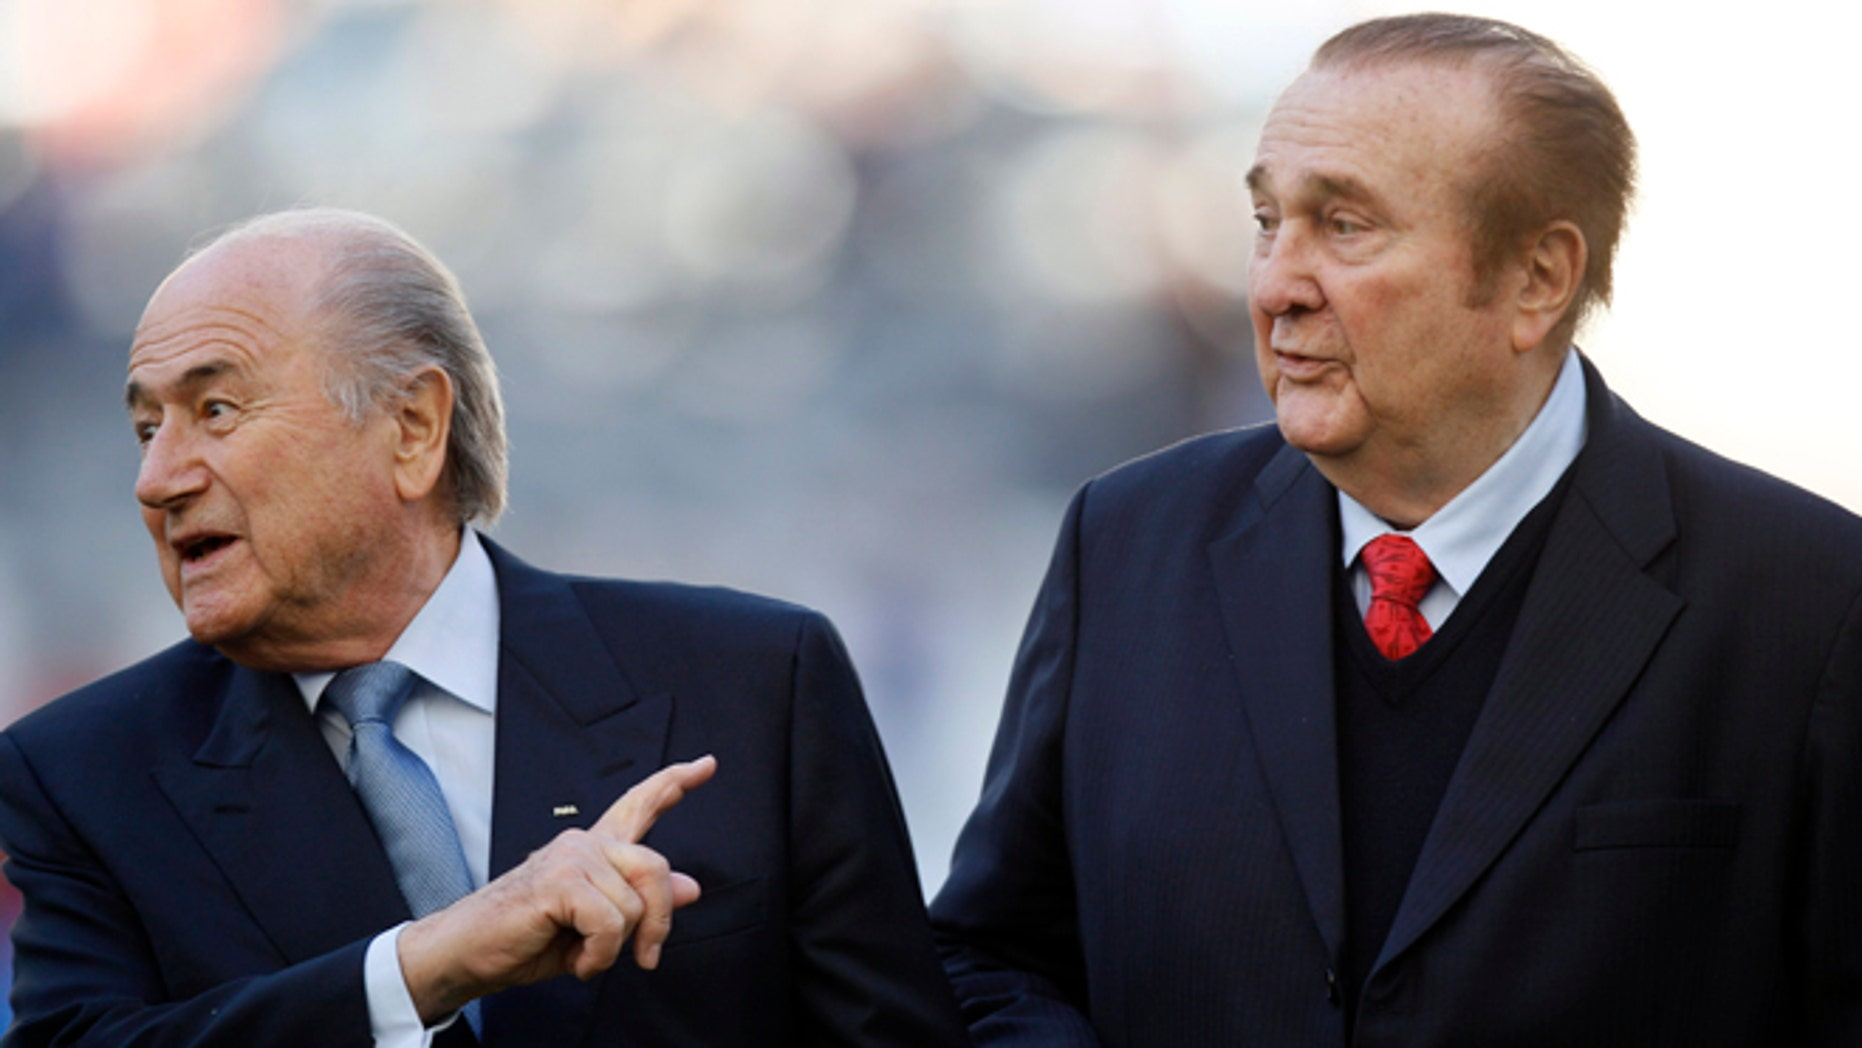 FILE - In this July 23, 2011 file photo, FIFA President Sepp Blatter, left, and CONMEBOL President Nicolás Leoz, right, stand on the pitch before the start of the Copa America third-place soccer match between Venezuela and Peru in La Plata, Argentina. Loez's lawyer said Thursday, July 23, 2015, that U.S. prosecutors in New York have asked Paraguay to extradite the former president of South America's soccer confederation and one of those charged in a corruption scandal being investigated by the U.S. Justice Department. (AP Photo/Fernando Llano, File)